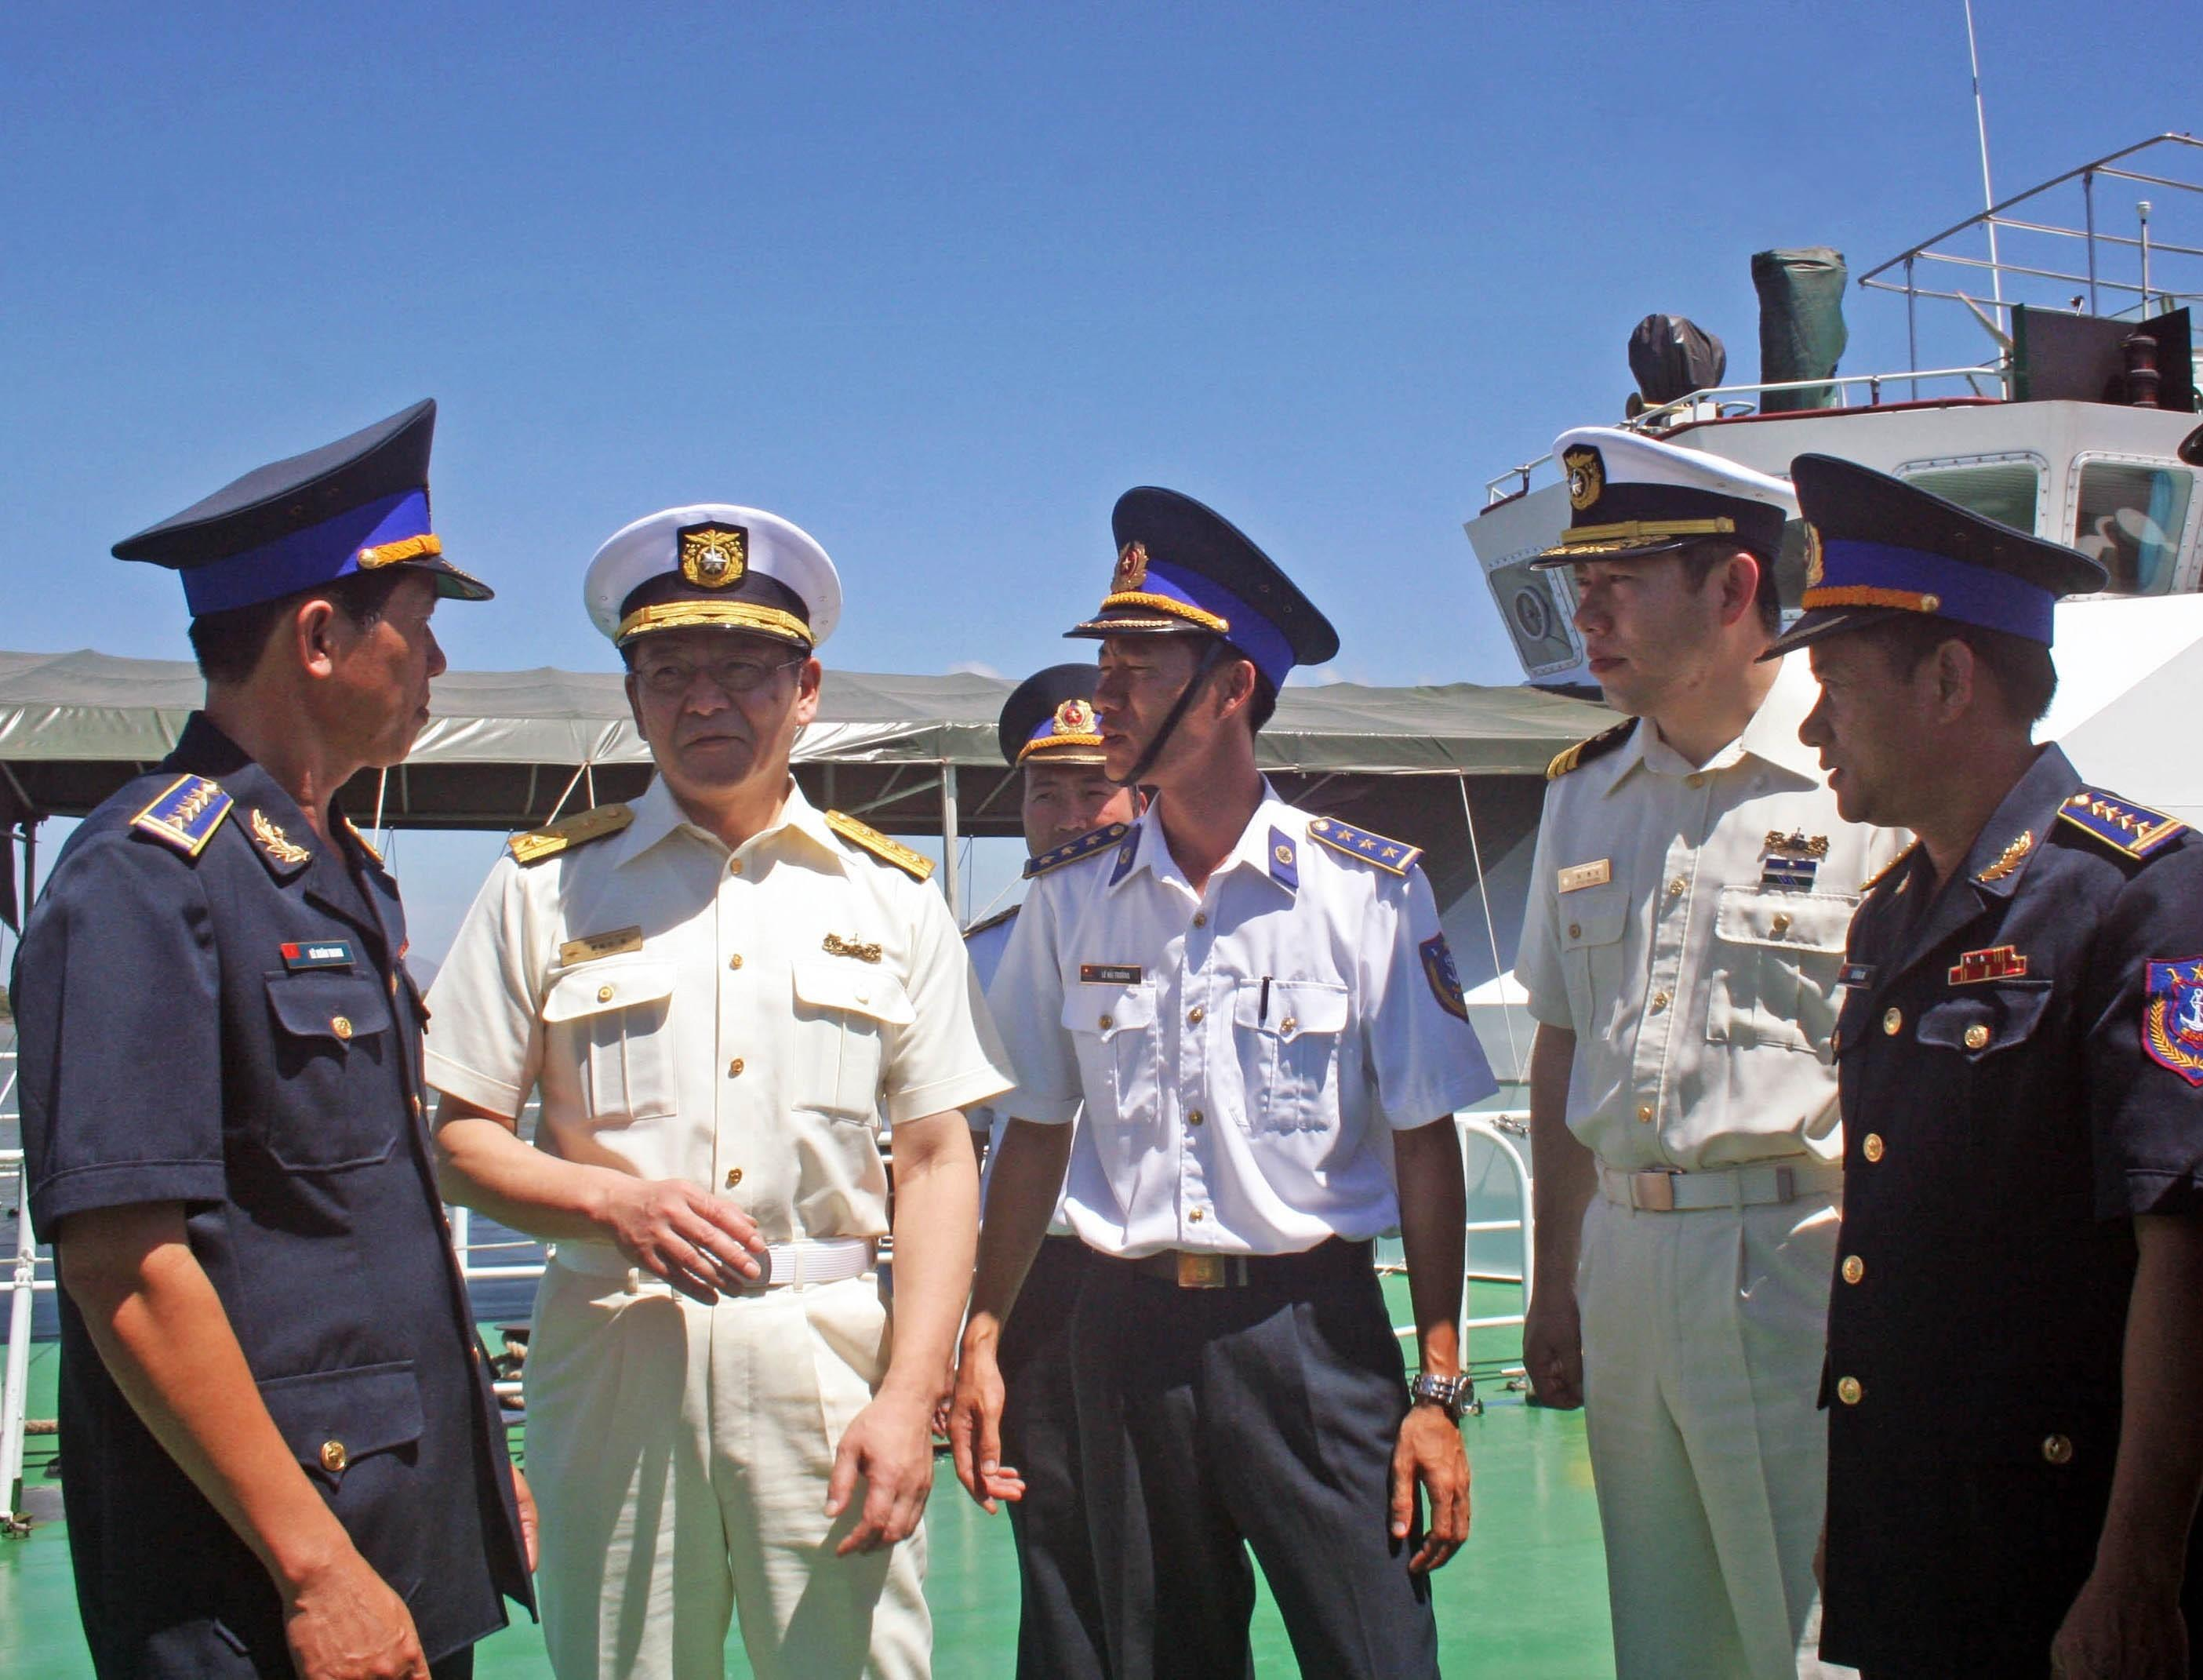 A Japan Coast Guard delegation, led by Vice Admiral Kiyoshi Saishoji, Director General of the Guard and Rescue Department, pays a working visit to Coast Guard Region 3 in Ba Ria-Vung Tau province to exchange experiences on coastal patrol, law enforcement, pirate fighting, search and rescue as well as maritime safety, February 28, 2013 (Photo: VNA)